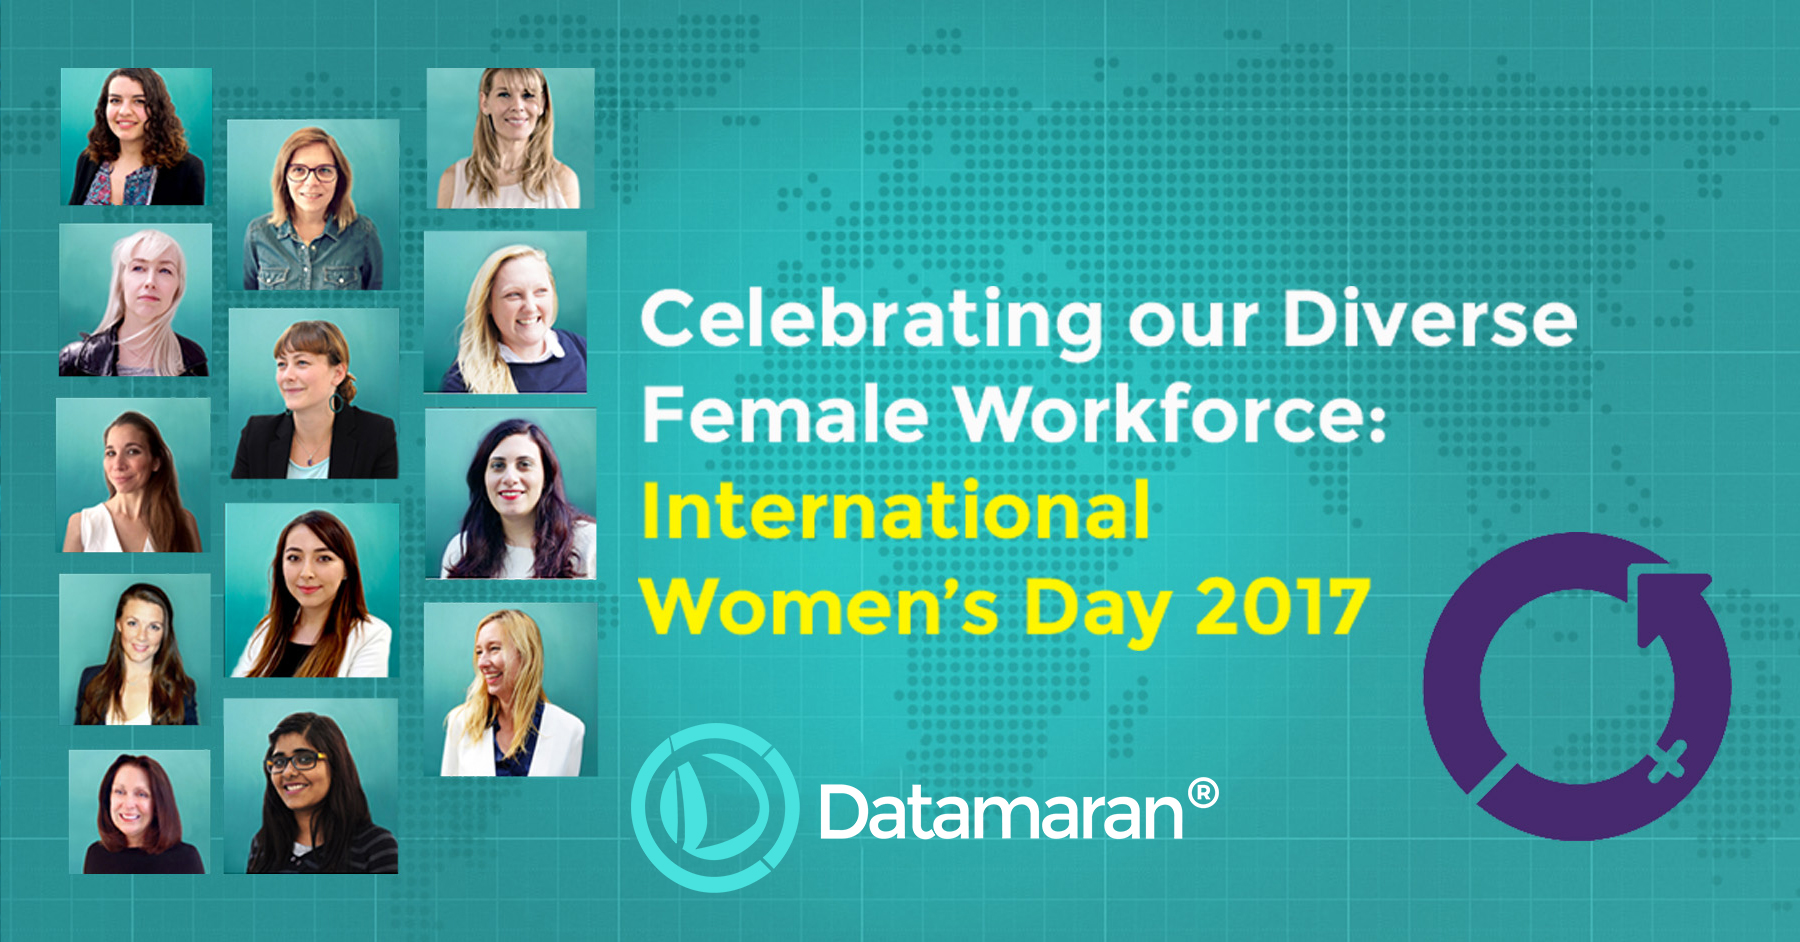 Celebrating our Diverse Female Workforce: International Women's Day